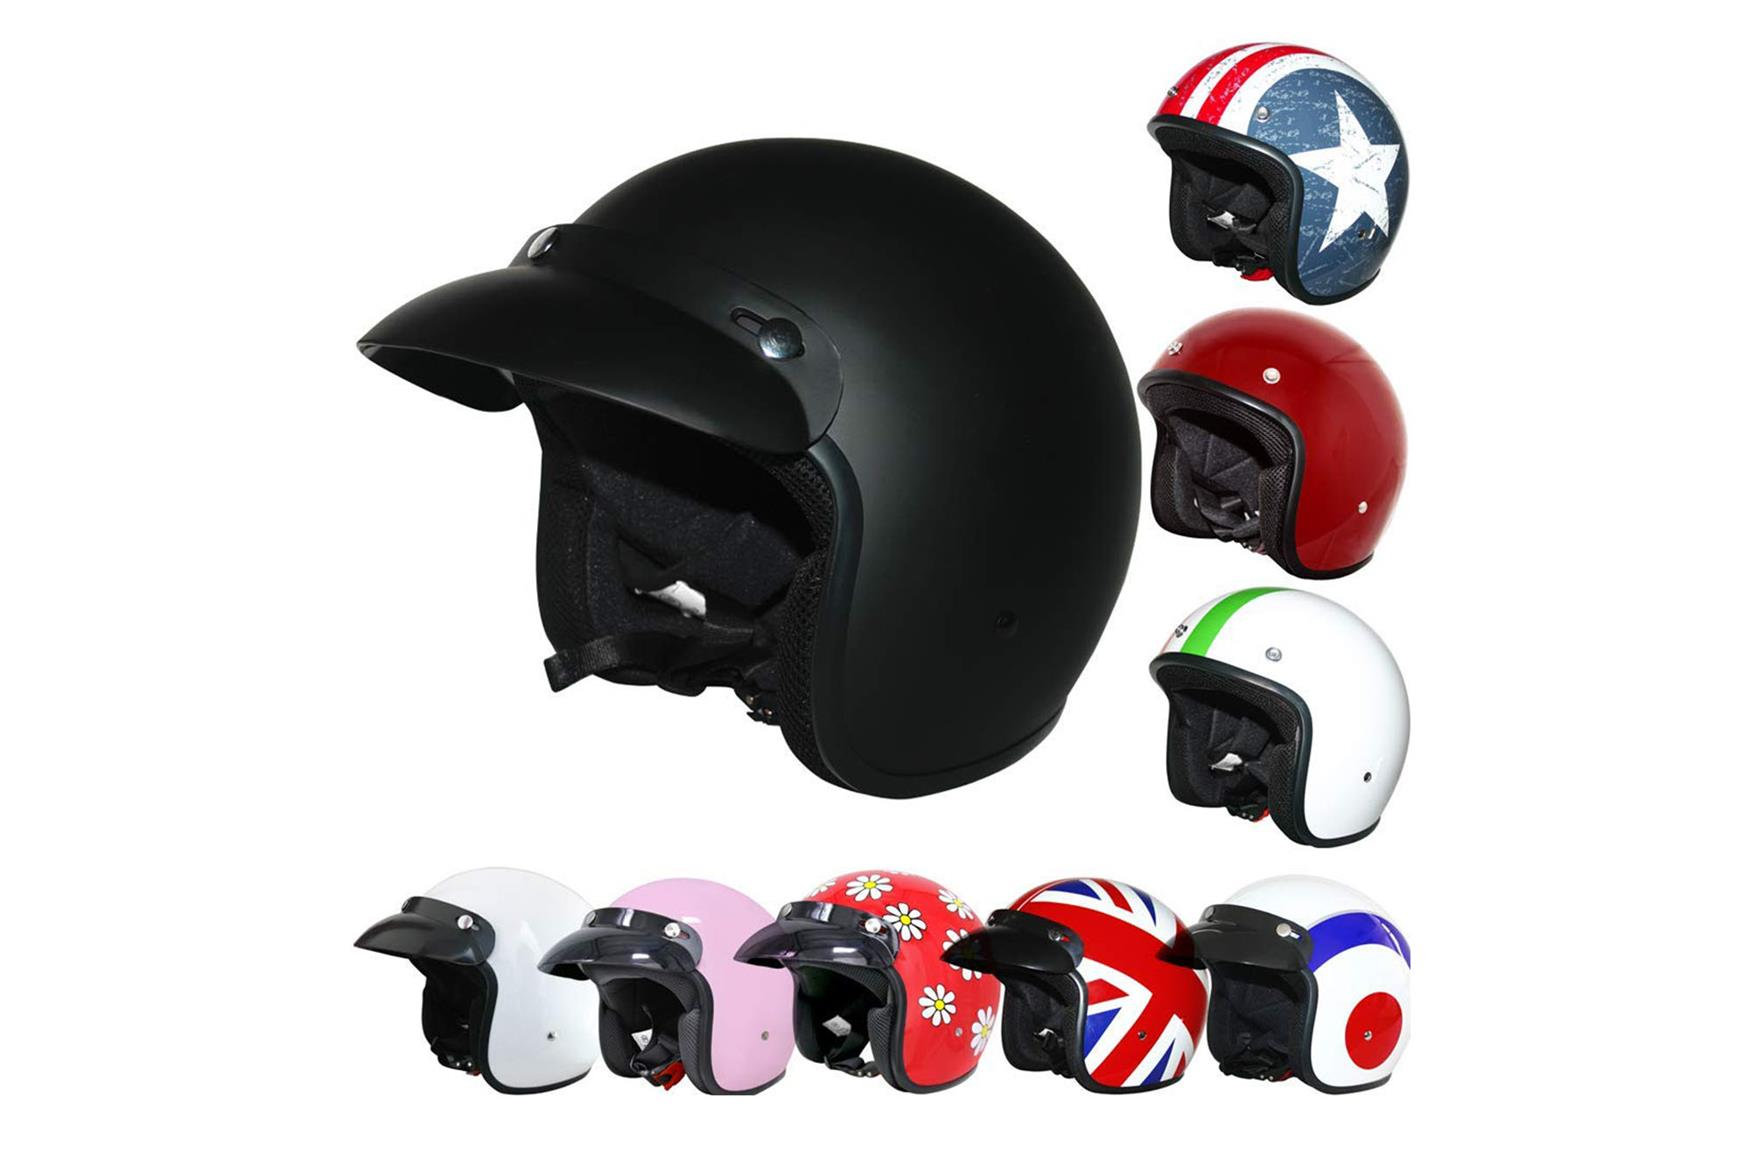 These Leopard helmets retail for around £23.95 (including delivery)